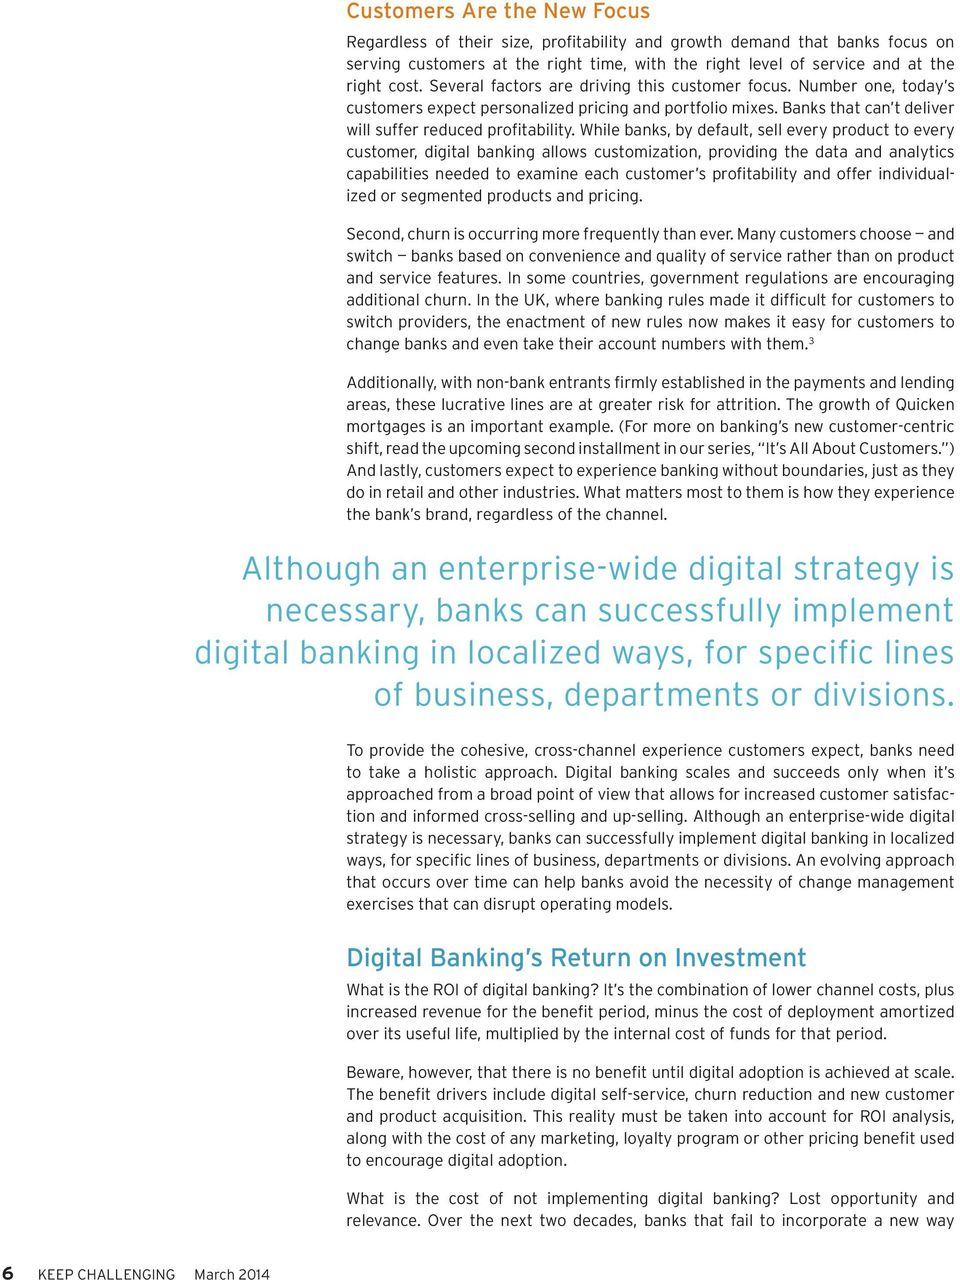 While banks, by default, sell every product to every customer, digital banking allows customization, providing the data and analytics capabilities needed to examine each customer s profitability and